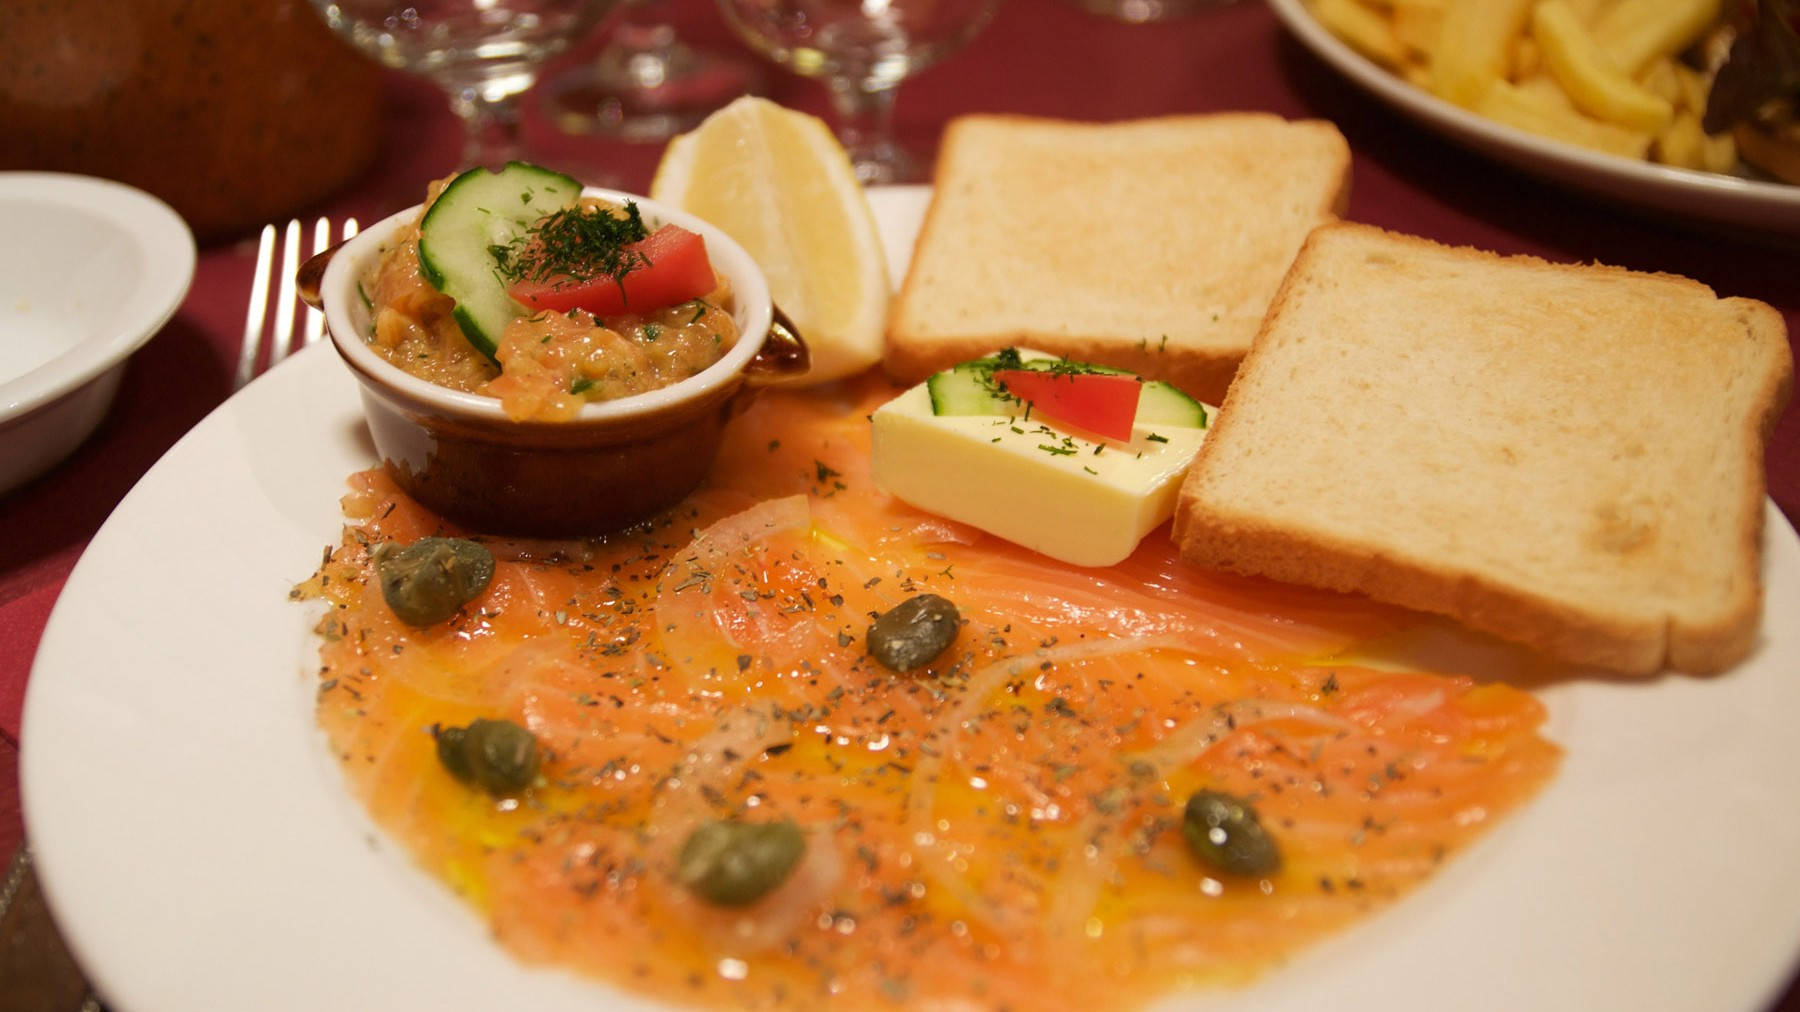 raw-salmon-done-three-ways-at-the-ontario-restaurant-photo-by-adrien-le-coa%cc%88rer